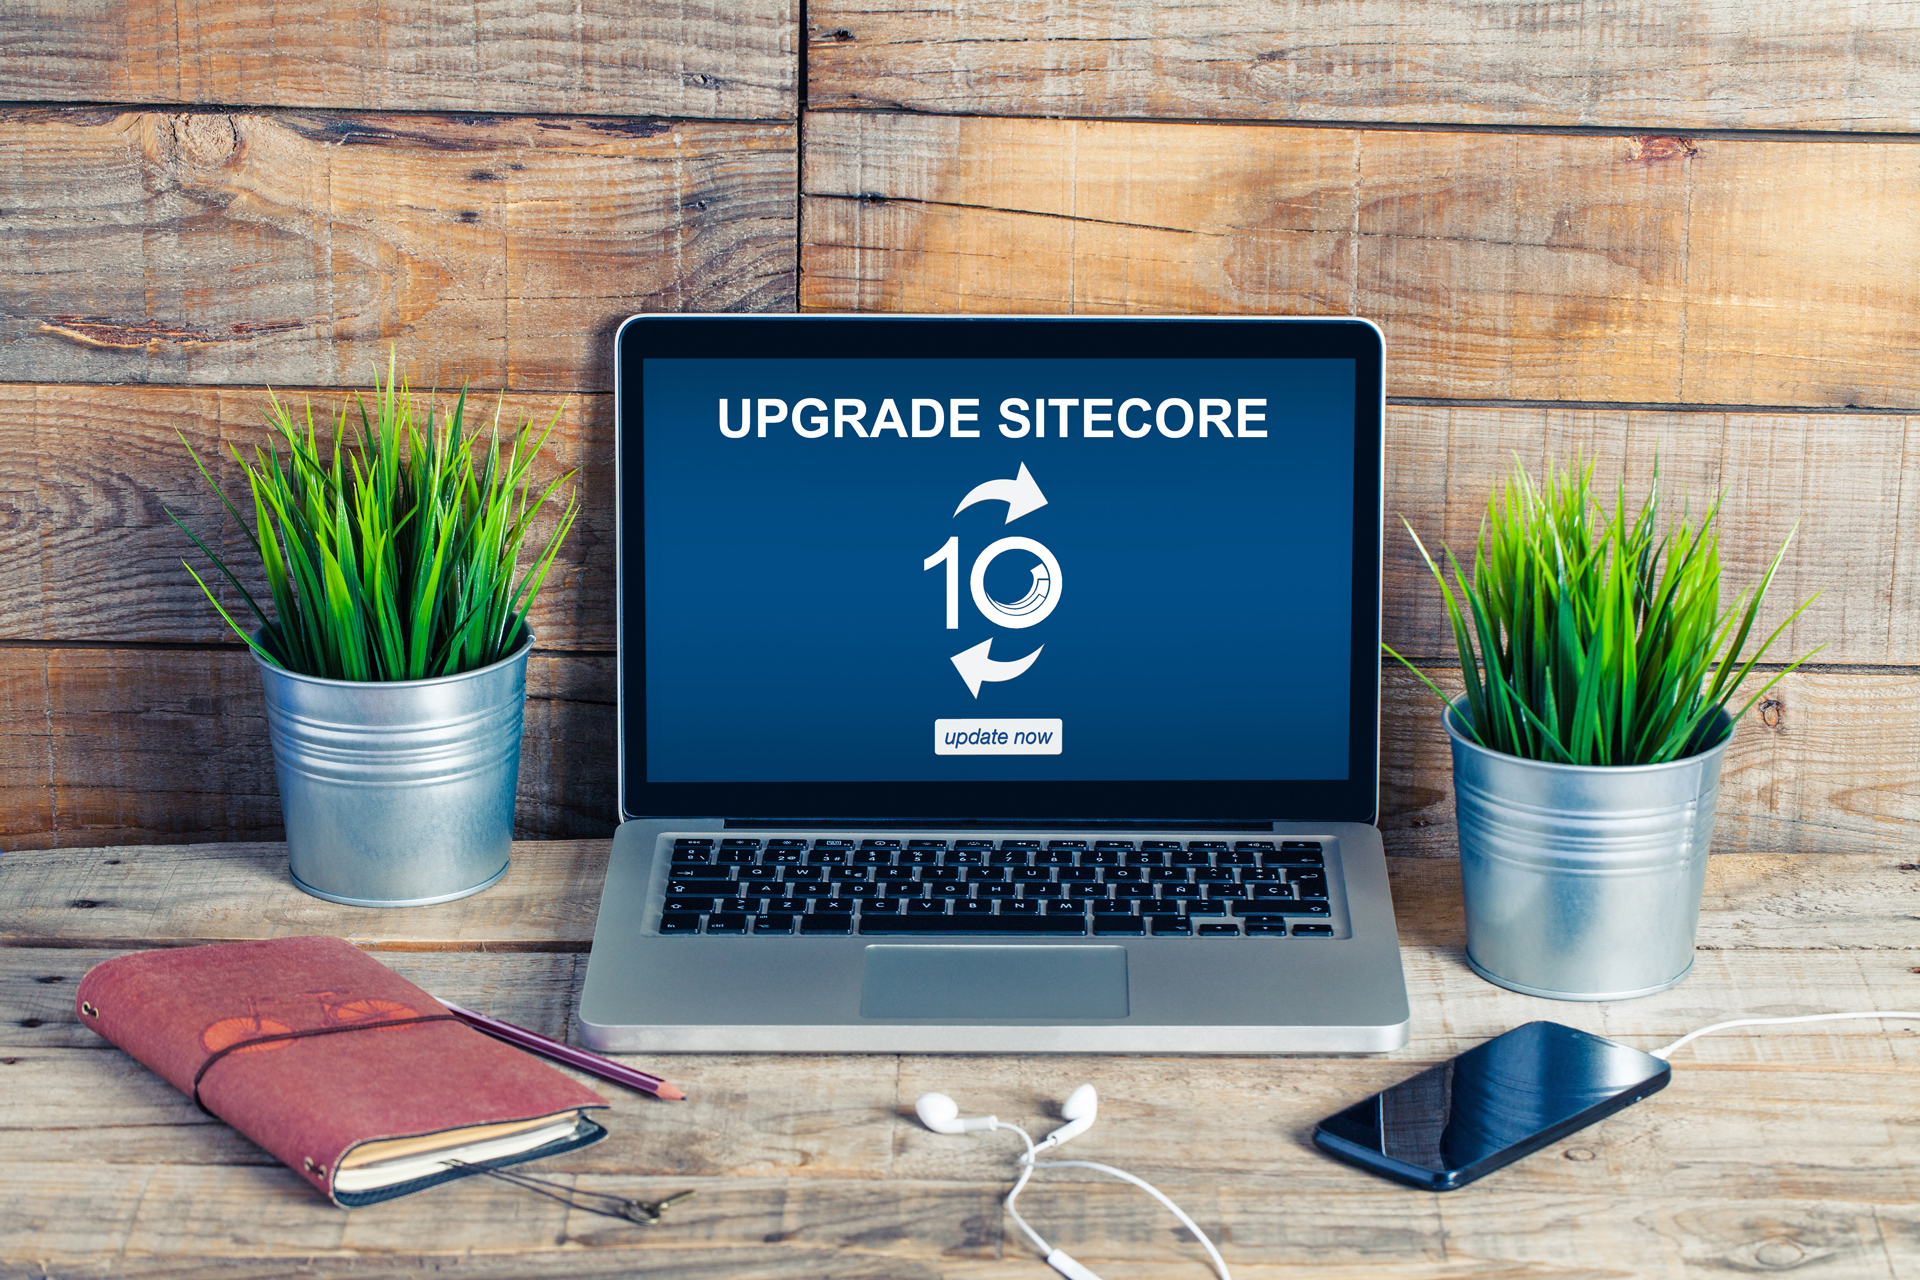 5 Reasons Why You Should Upgrade to Sitecore 10 vs Sitecore 9.x